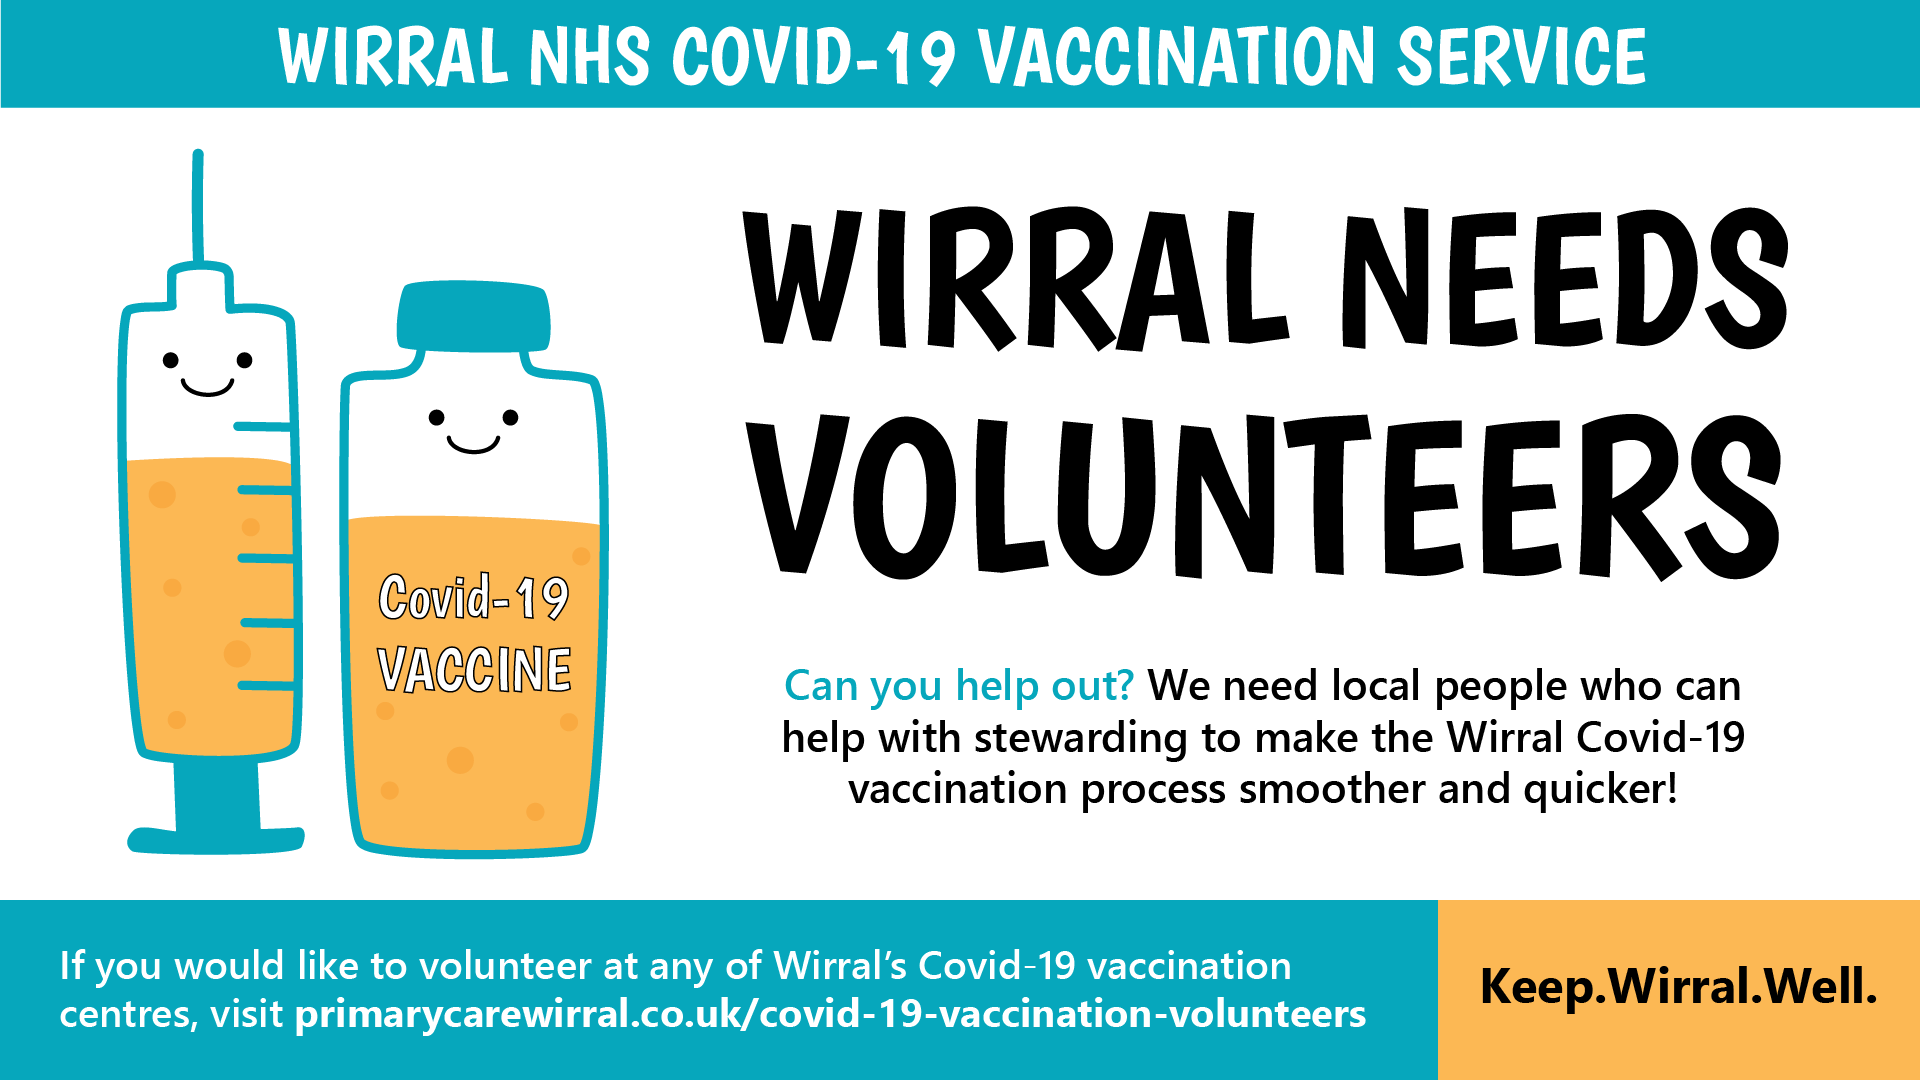 Volunteers Coronavirus Vaccine Wirral